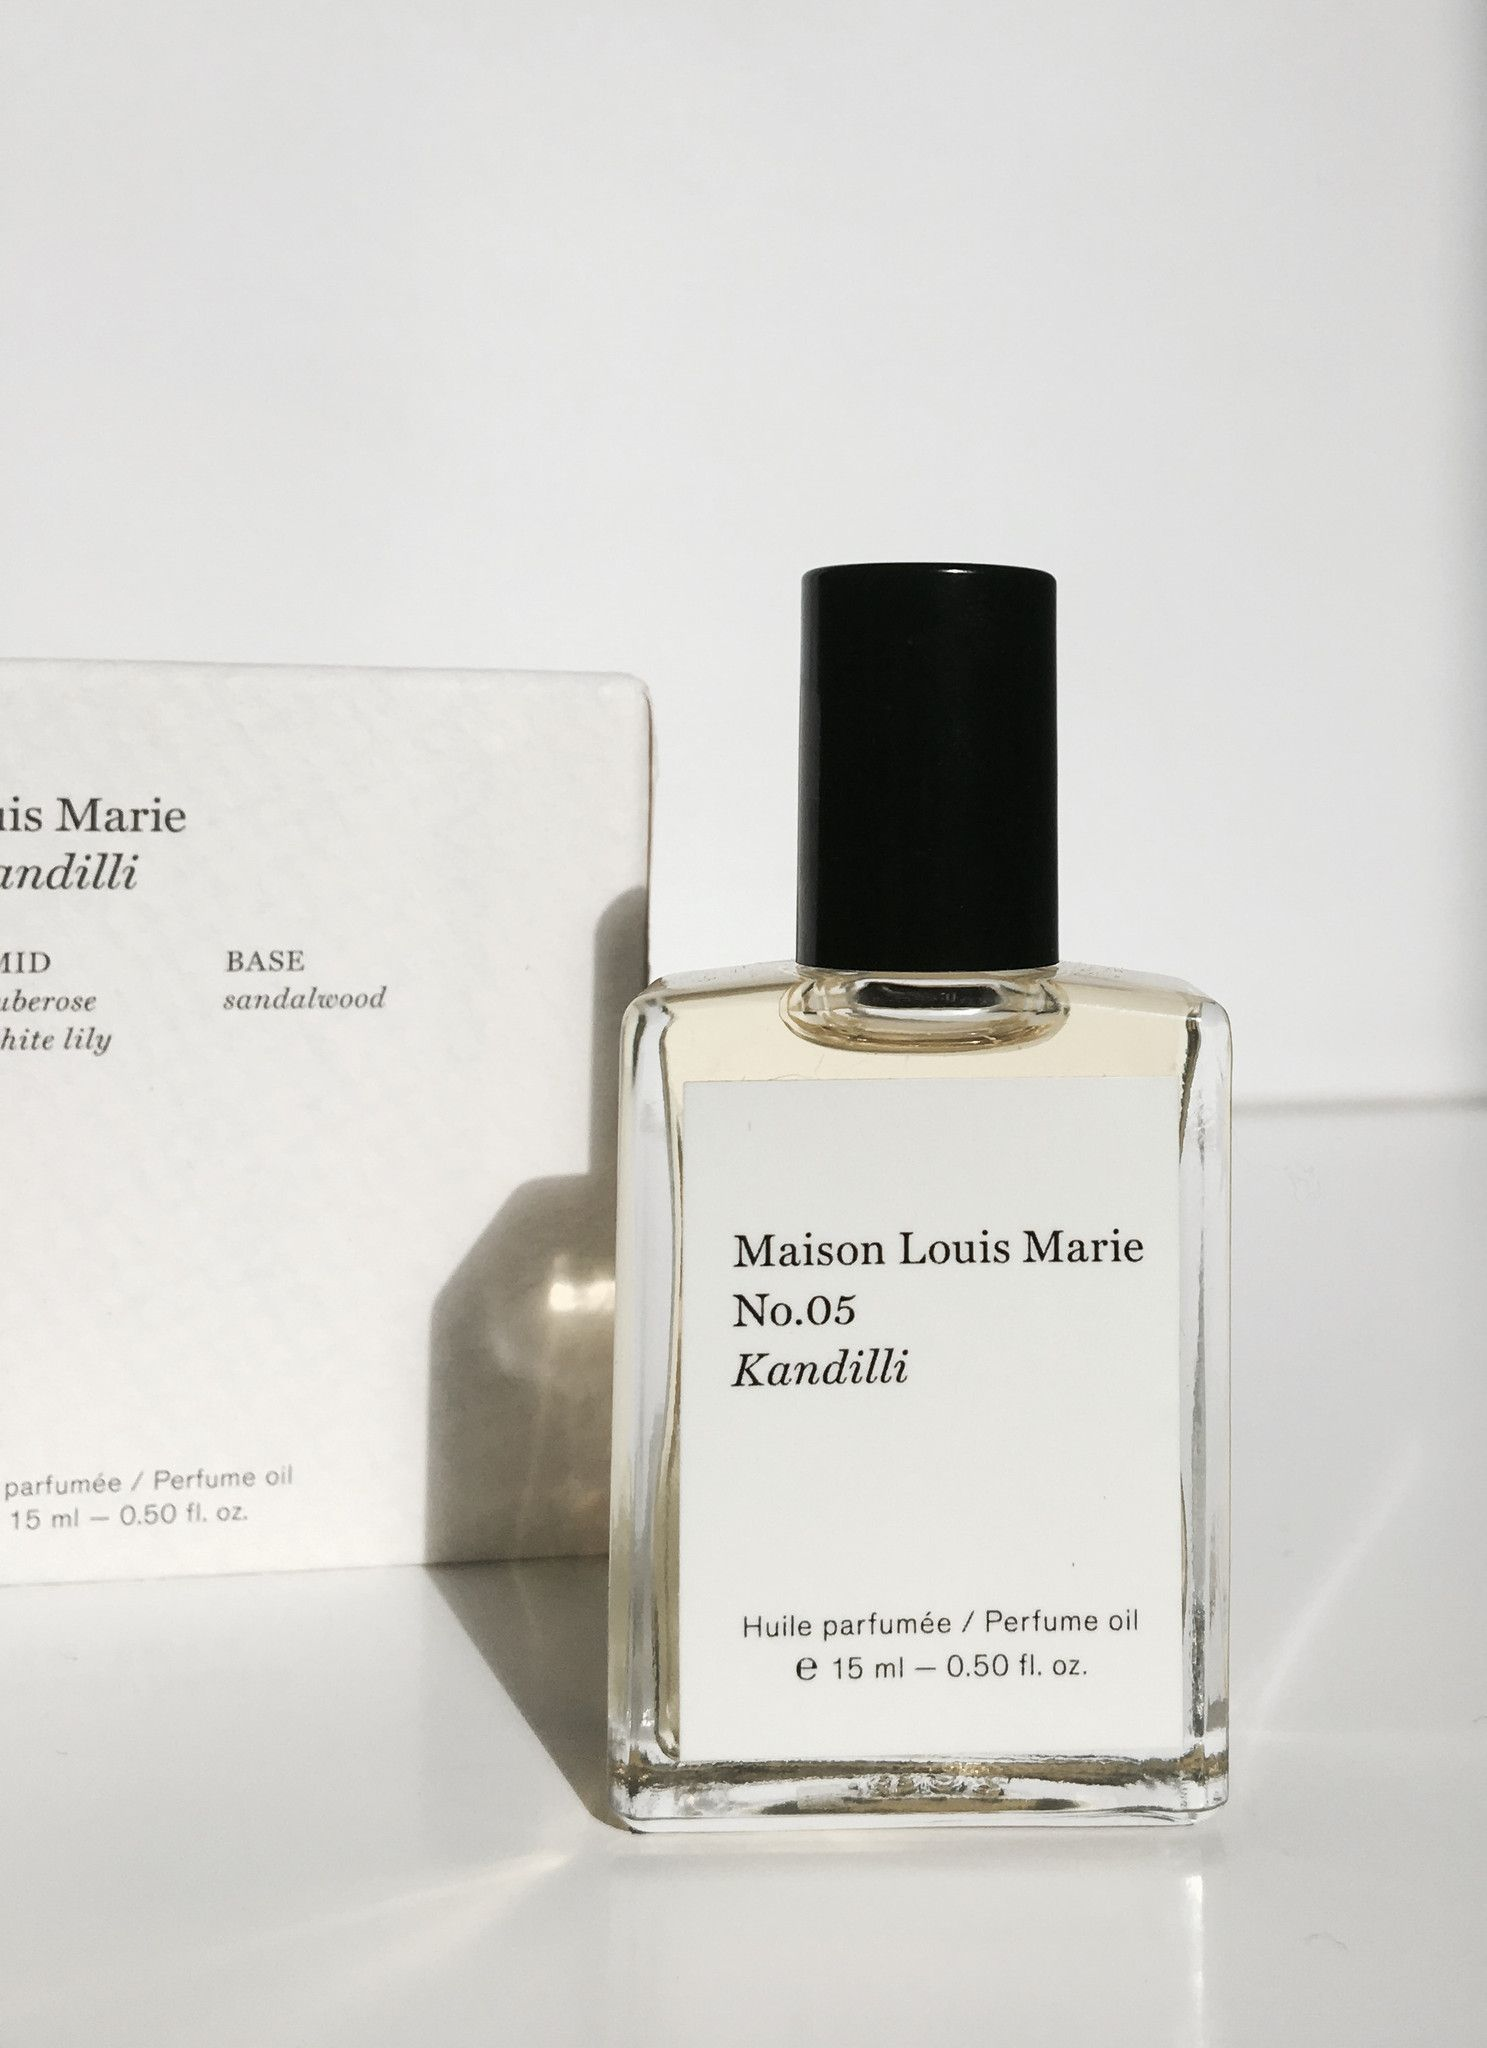 Sticker design · maison louis marie kandilli perfumed oil packaging paper packaging bottle packaging jewelry